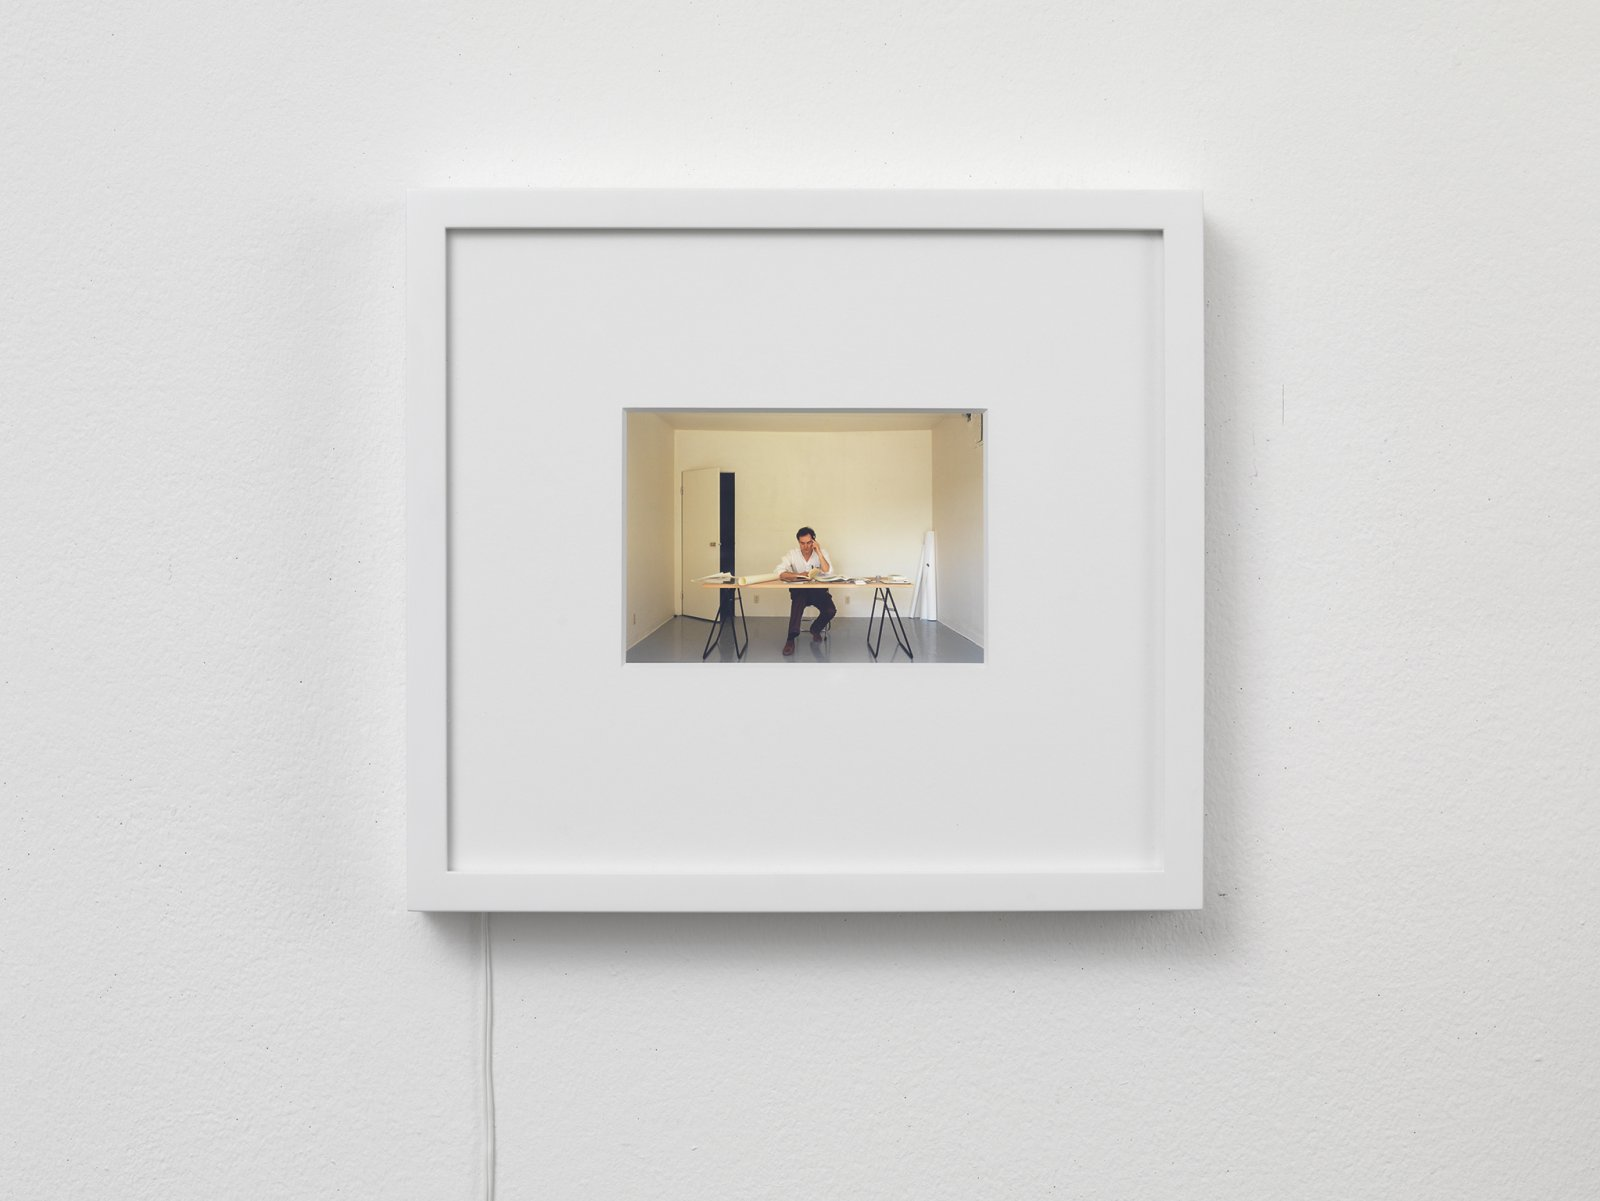 ​​​​​Ian Wallace, ​At Work 1983, 1983, backlit transparency, 15 x 13 in. (37 x 34 cm). Installation view, ​A Literature of Images​, Witte de With, Rotterdam, 2008​​​​​​​​​​ by Ian Wallace